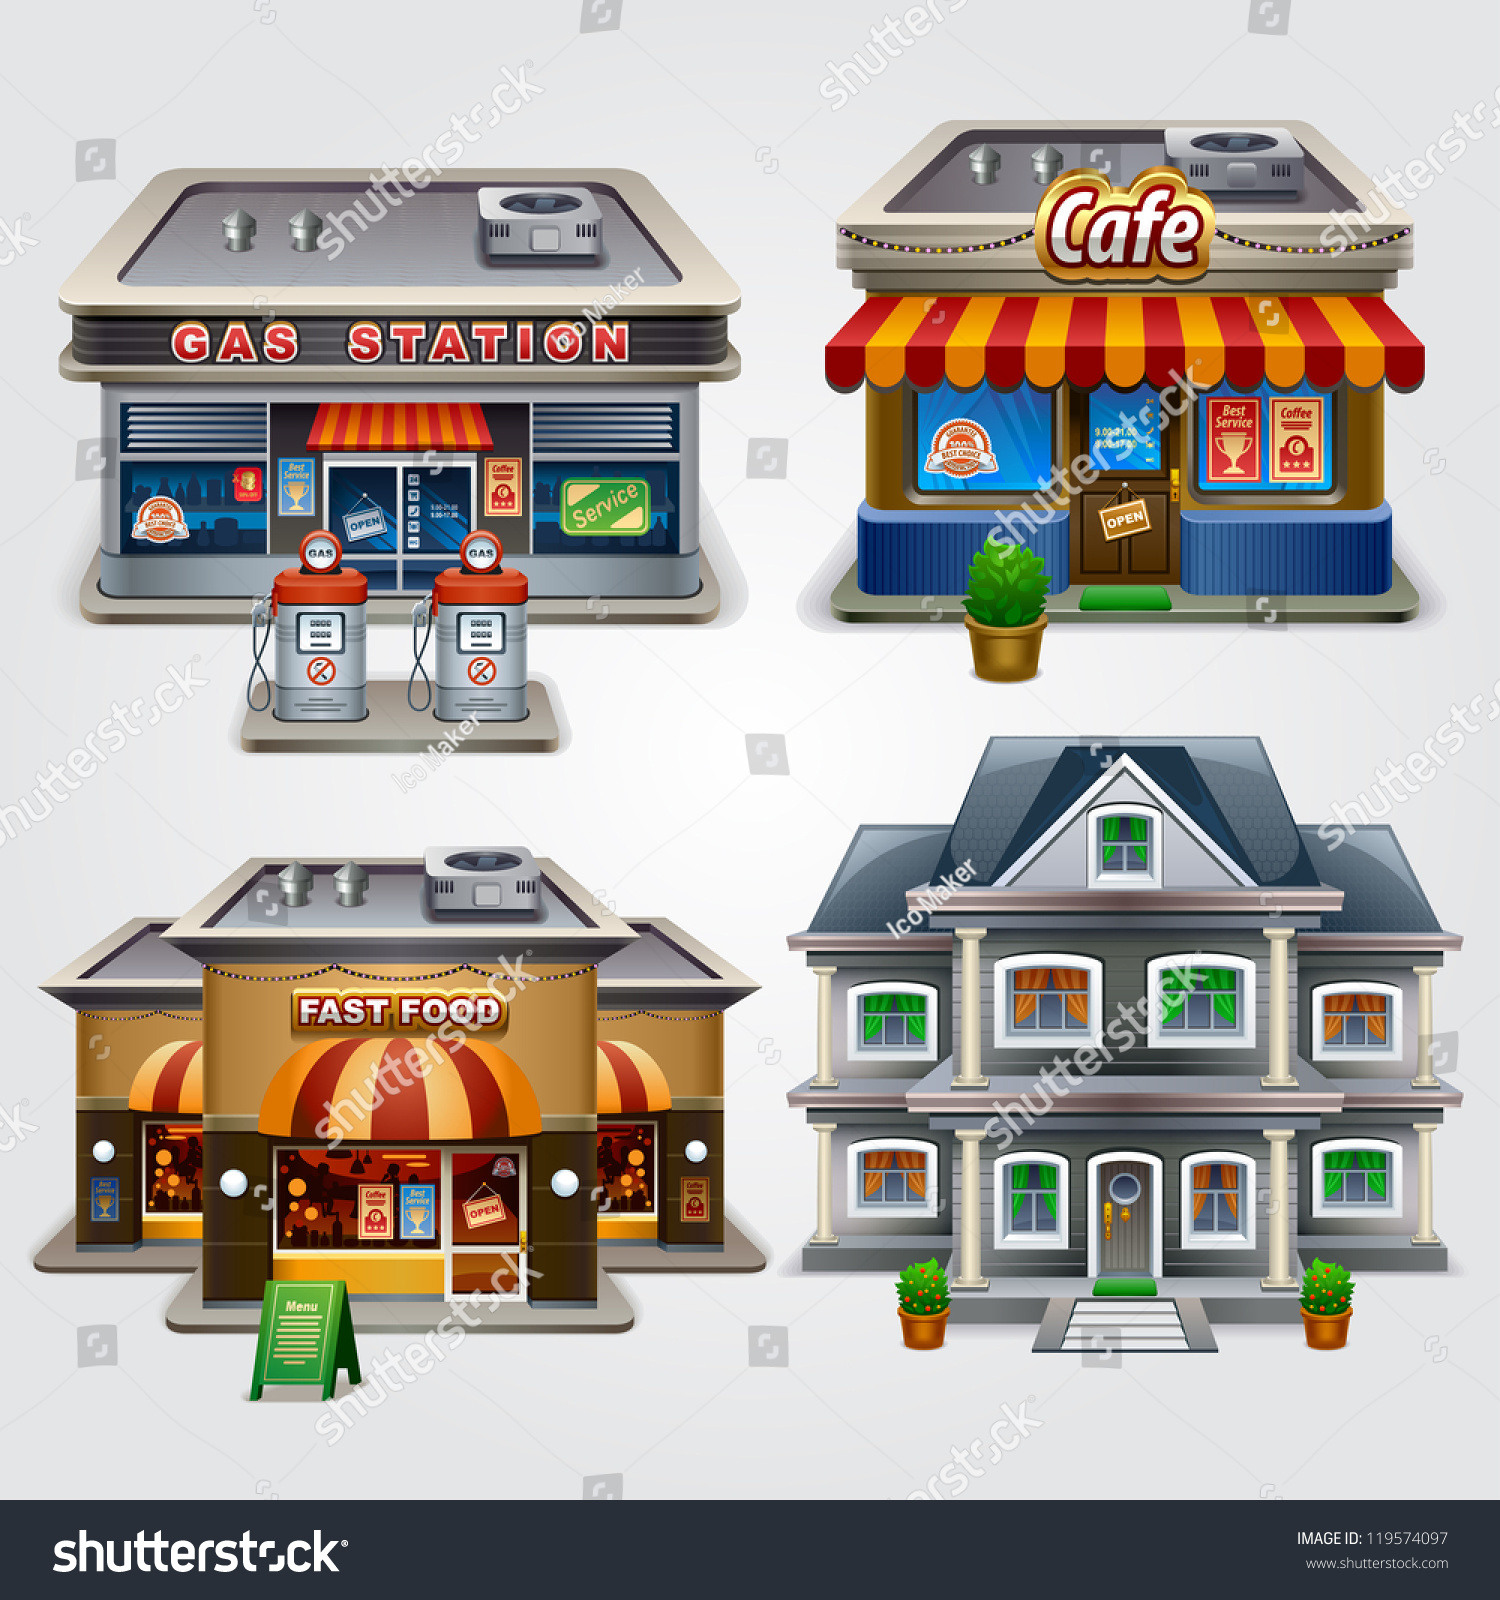 Vector illustration store gas station cafe stock vector for Fast house music